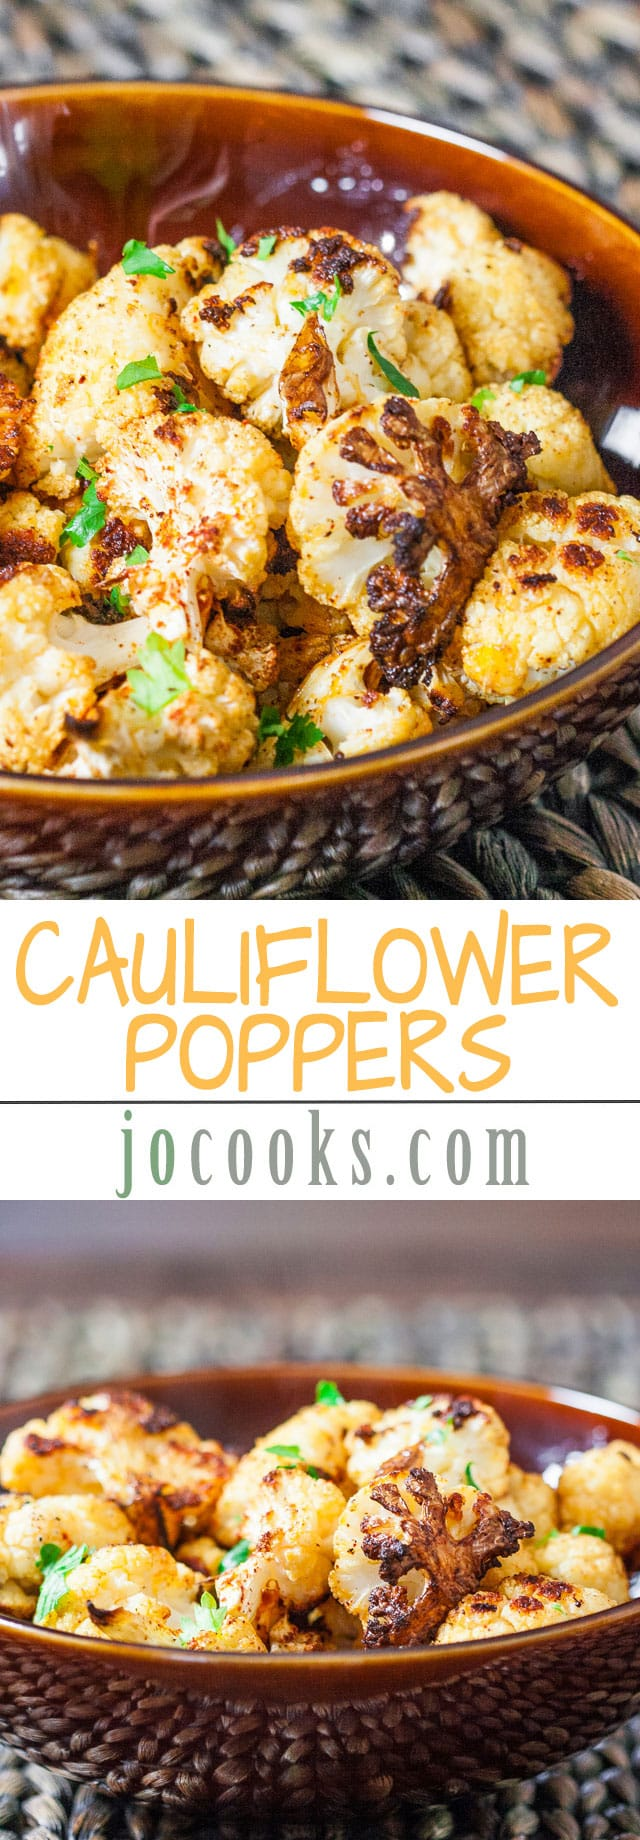 cauliflower-poppers-collage